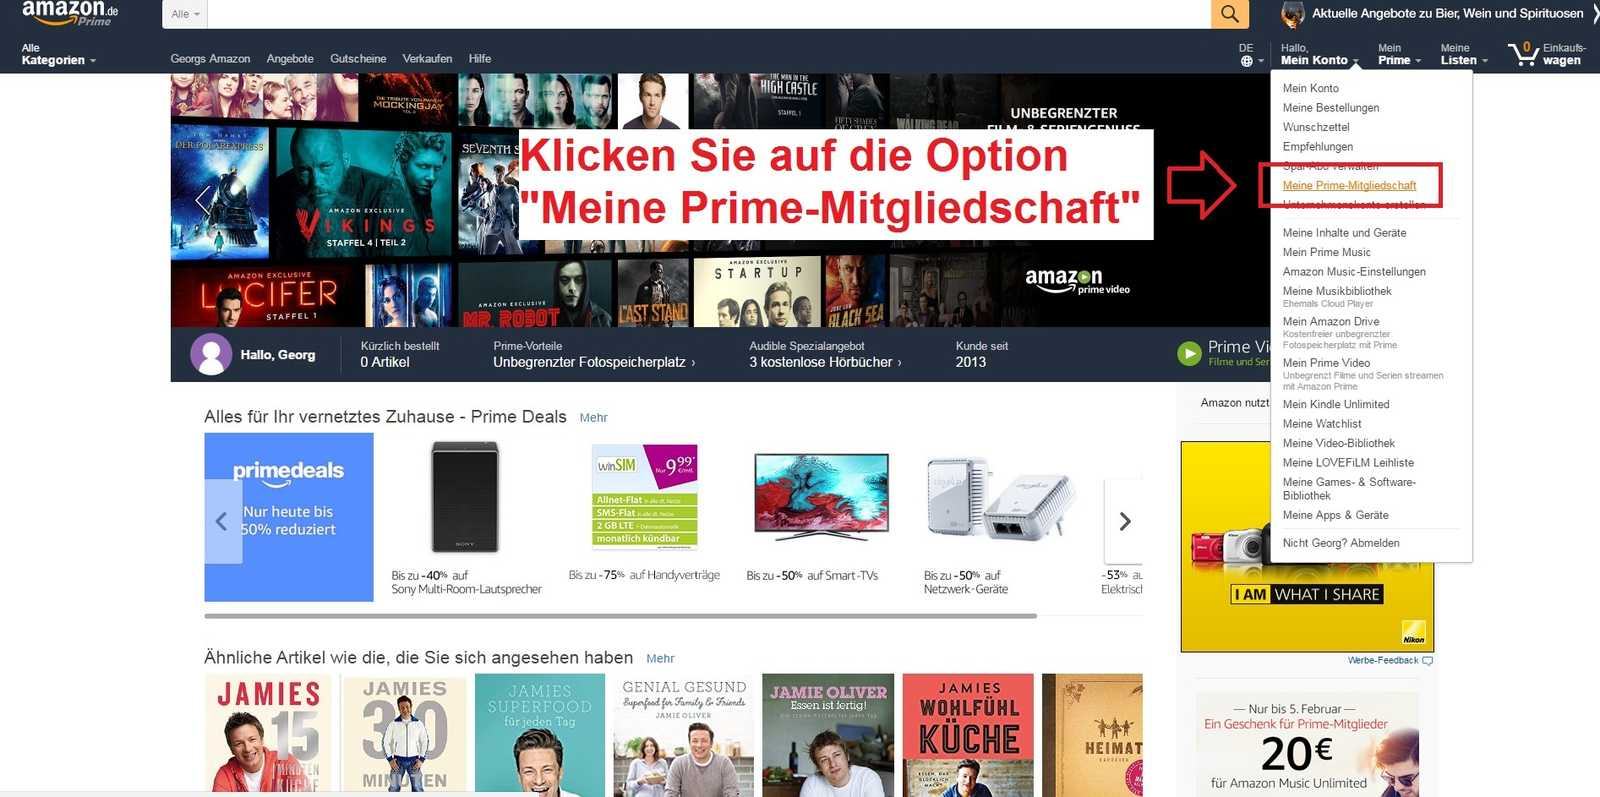 amazon auf rechnung zahlen bei amazon auf rechnung. Black Bedroom Furniture Sets. Home Design Ideas